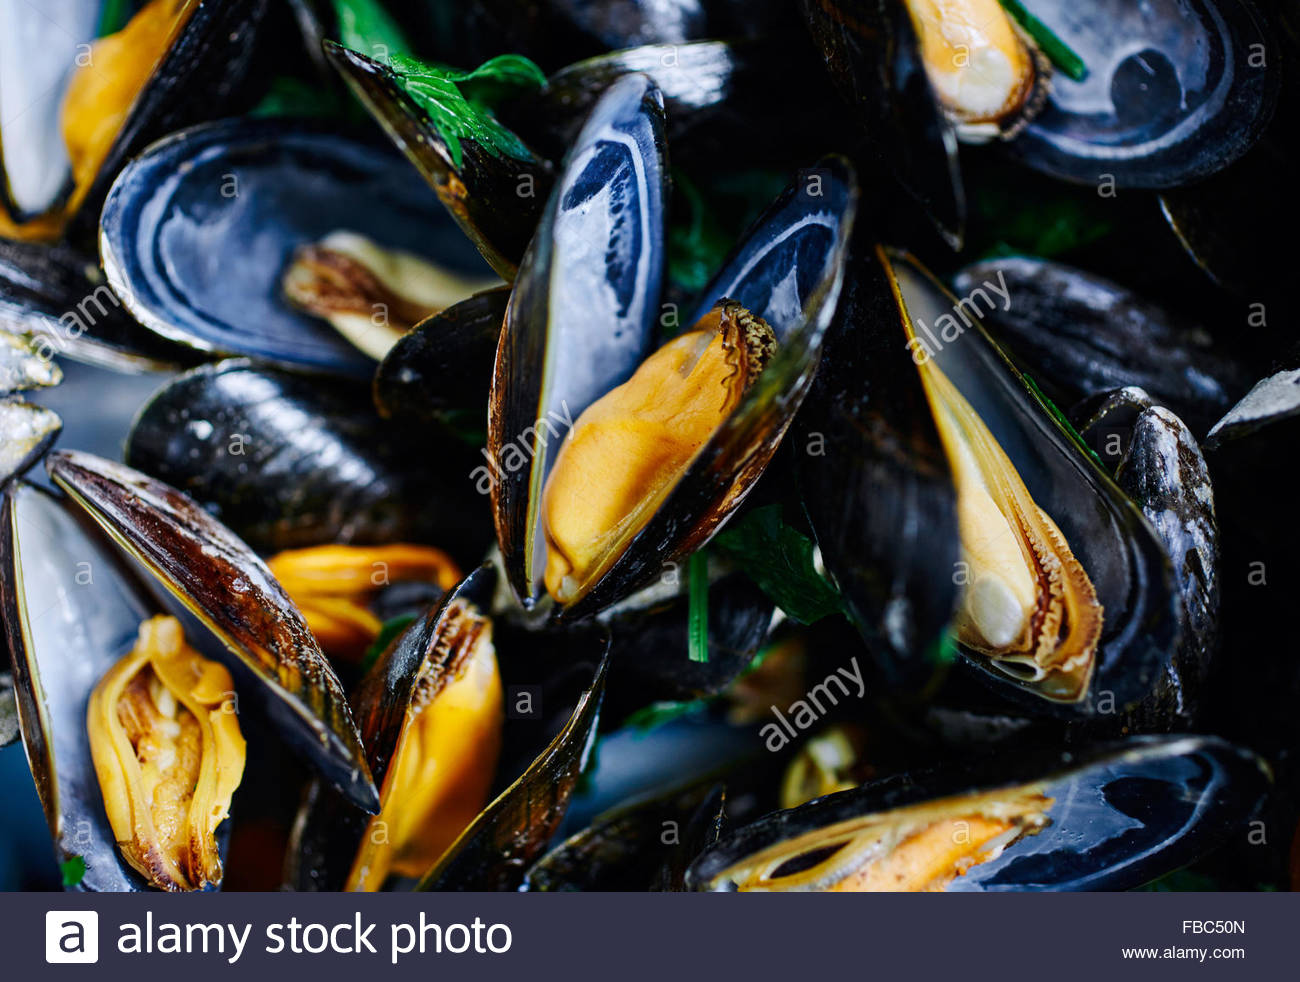 Close up shot of cooked blue mussels - Stock Image